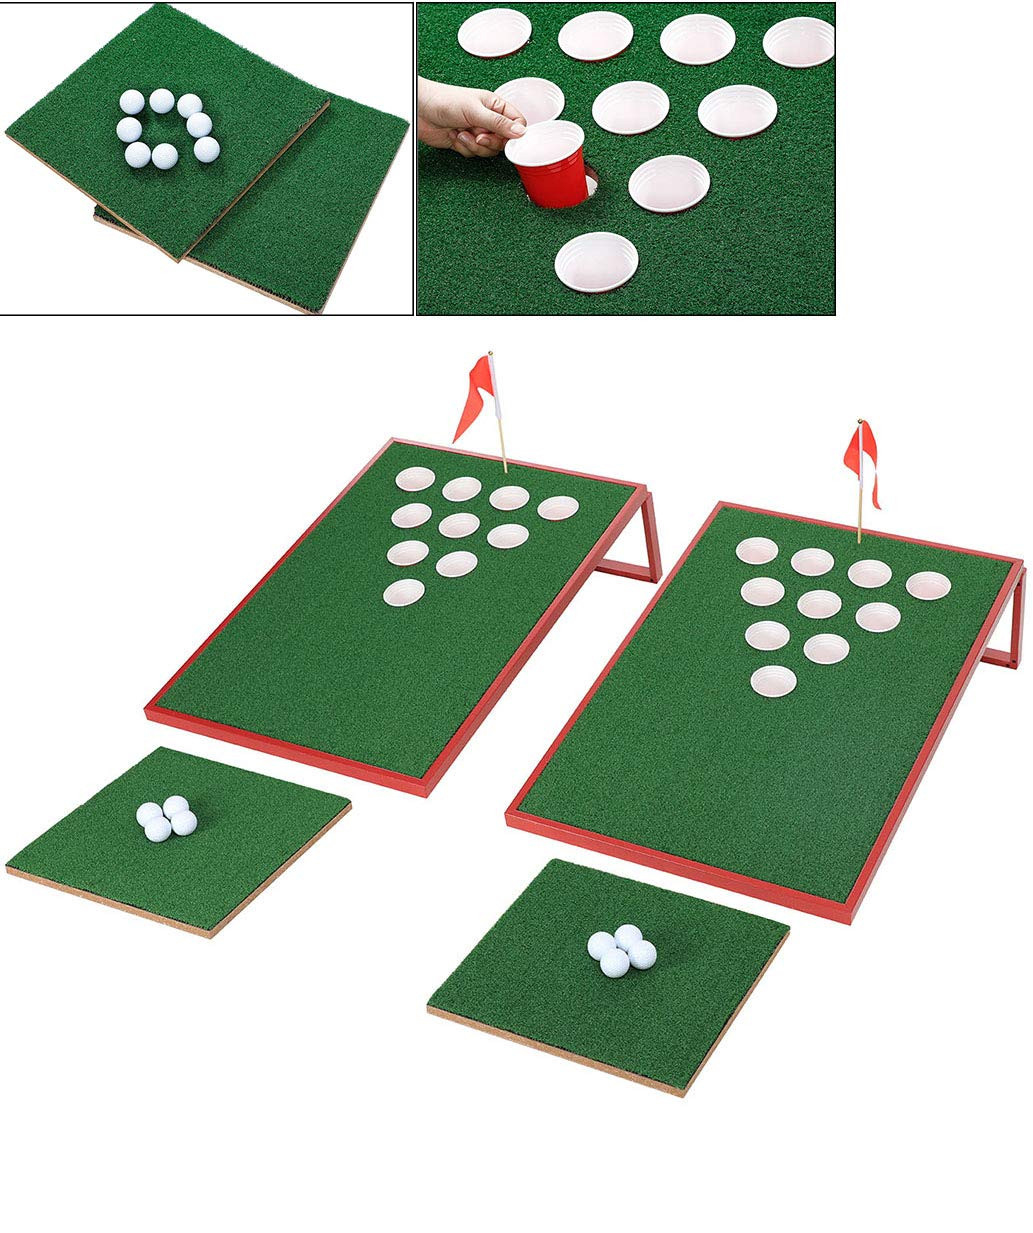 SPRAWL Golf Pong Set - Two Boards - Exciting Game for Golf Enthusiasts and Beginners Red